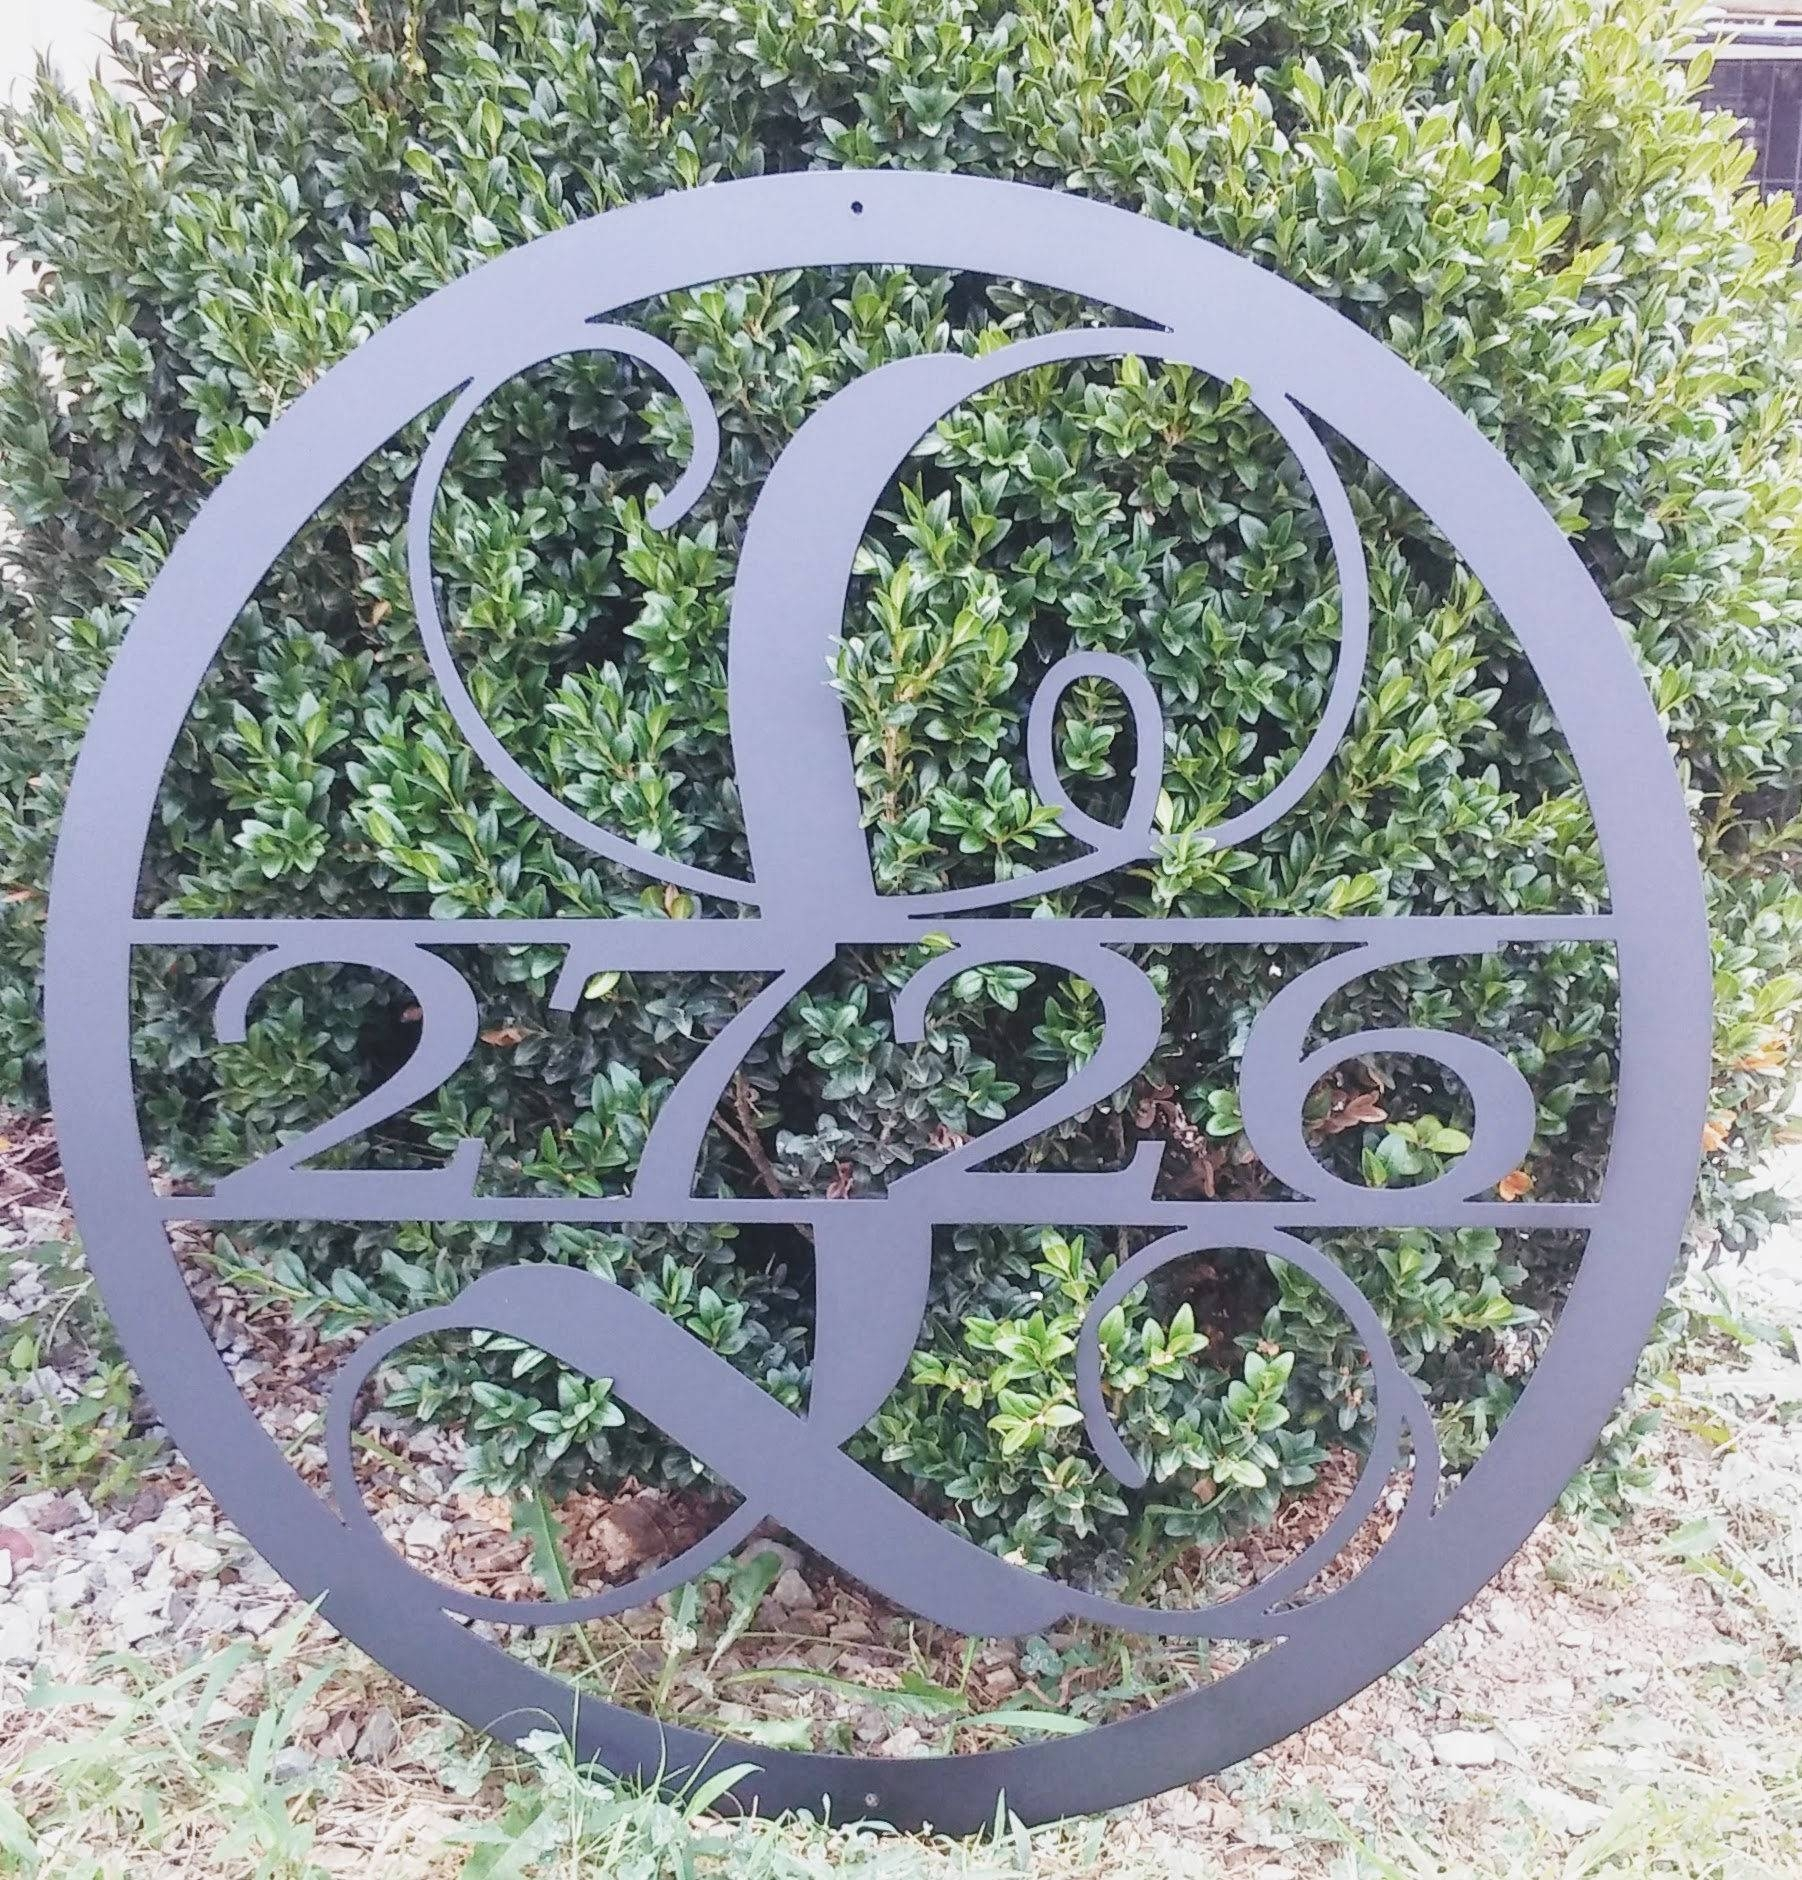 28 Inch Circle Monogram With House Number, Metal Wall Art, 28 Inch In Most Up To Date Monogram Metal Wall Art (View 1 of 20)